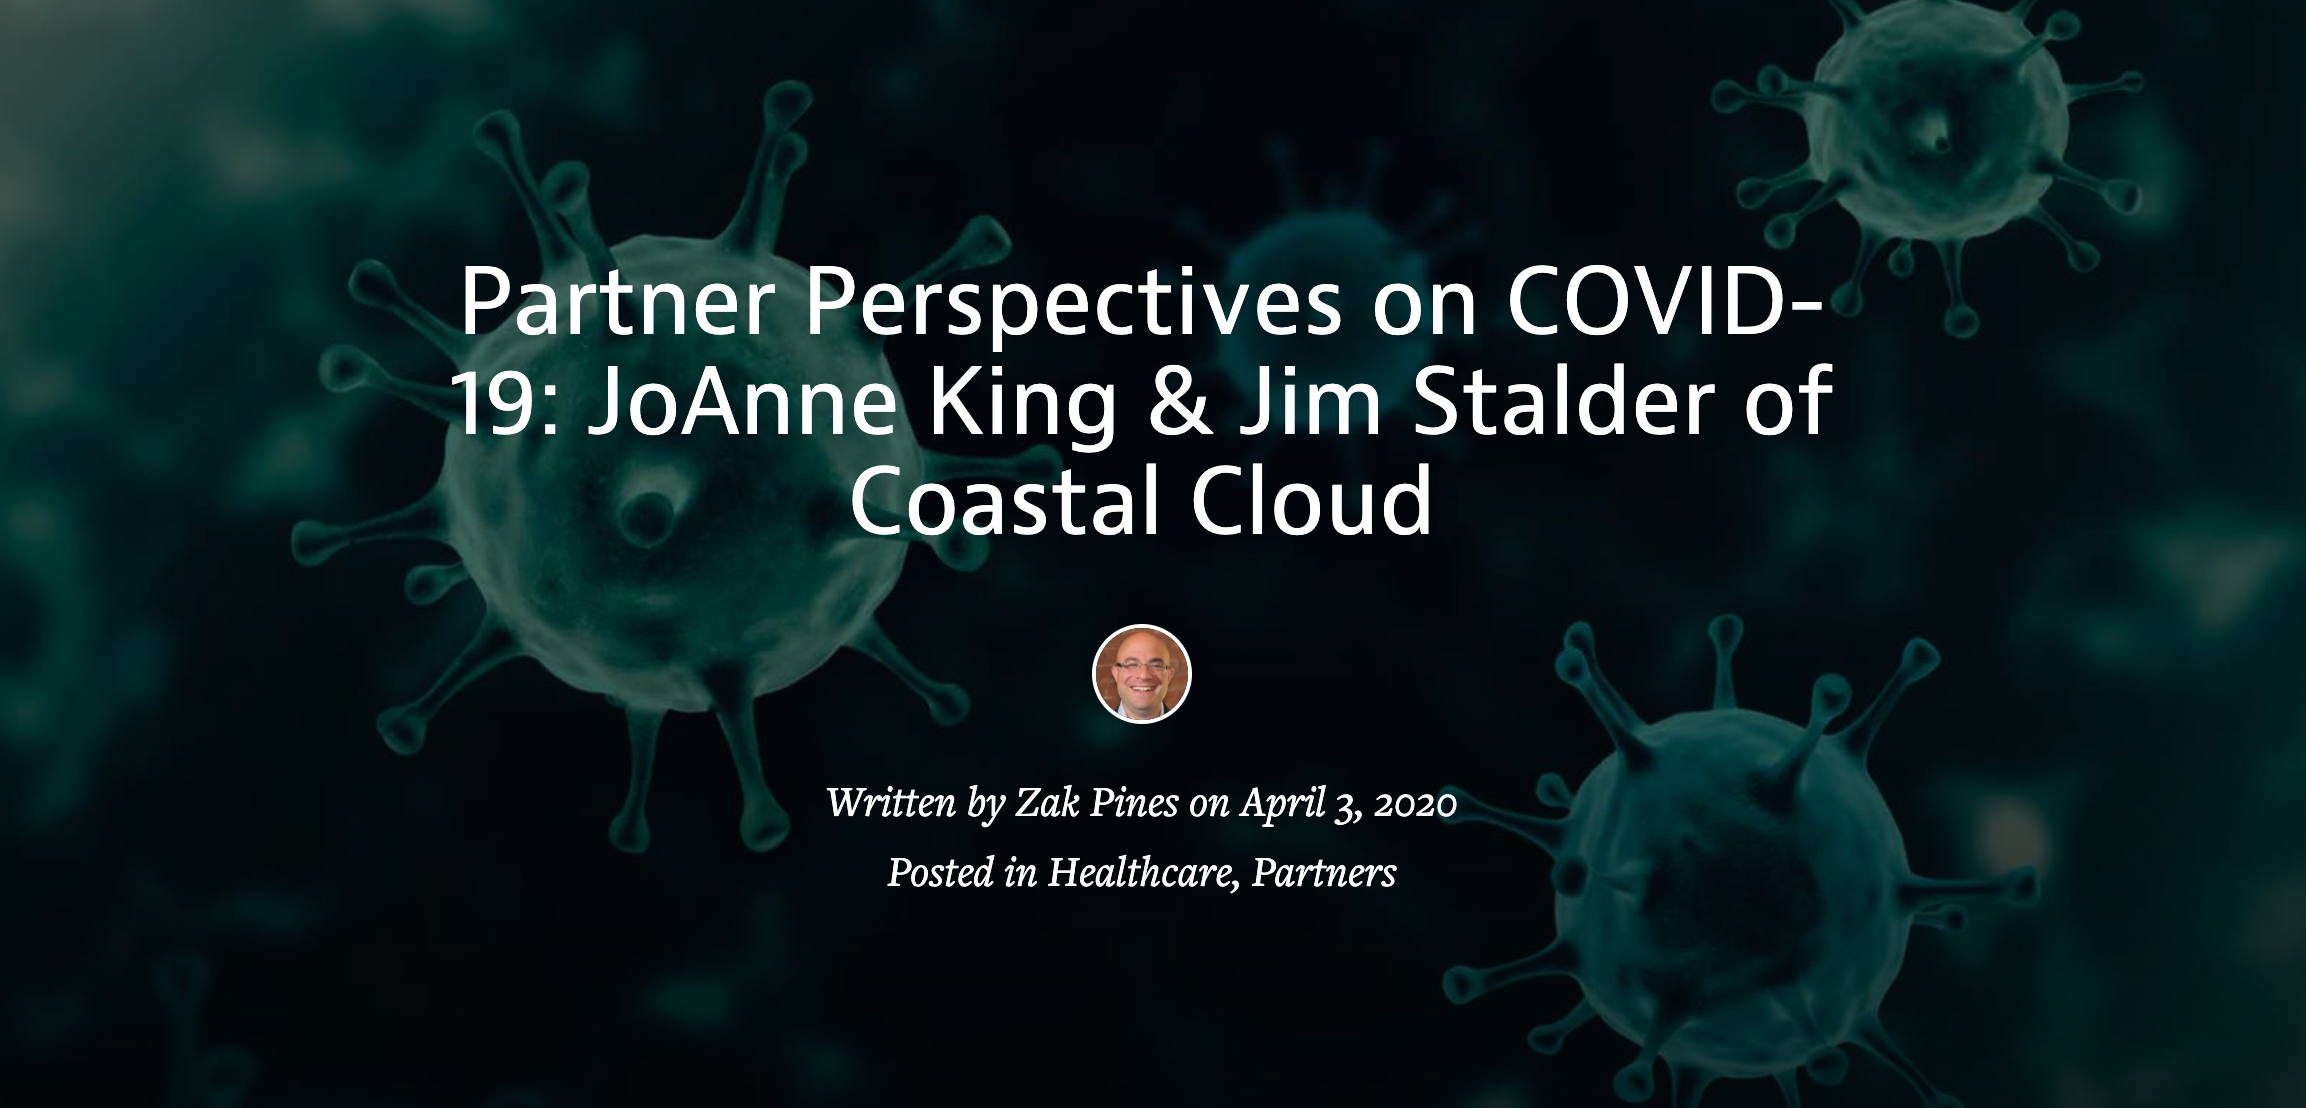 Partner Perspectives on COVID-19